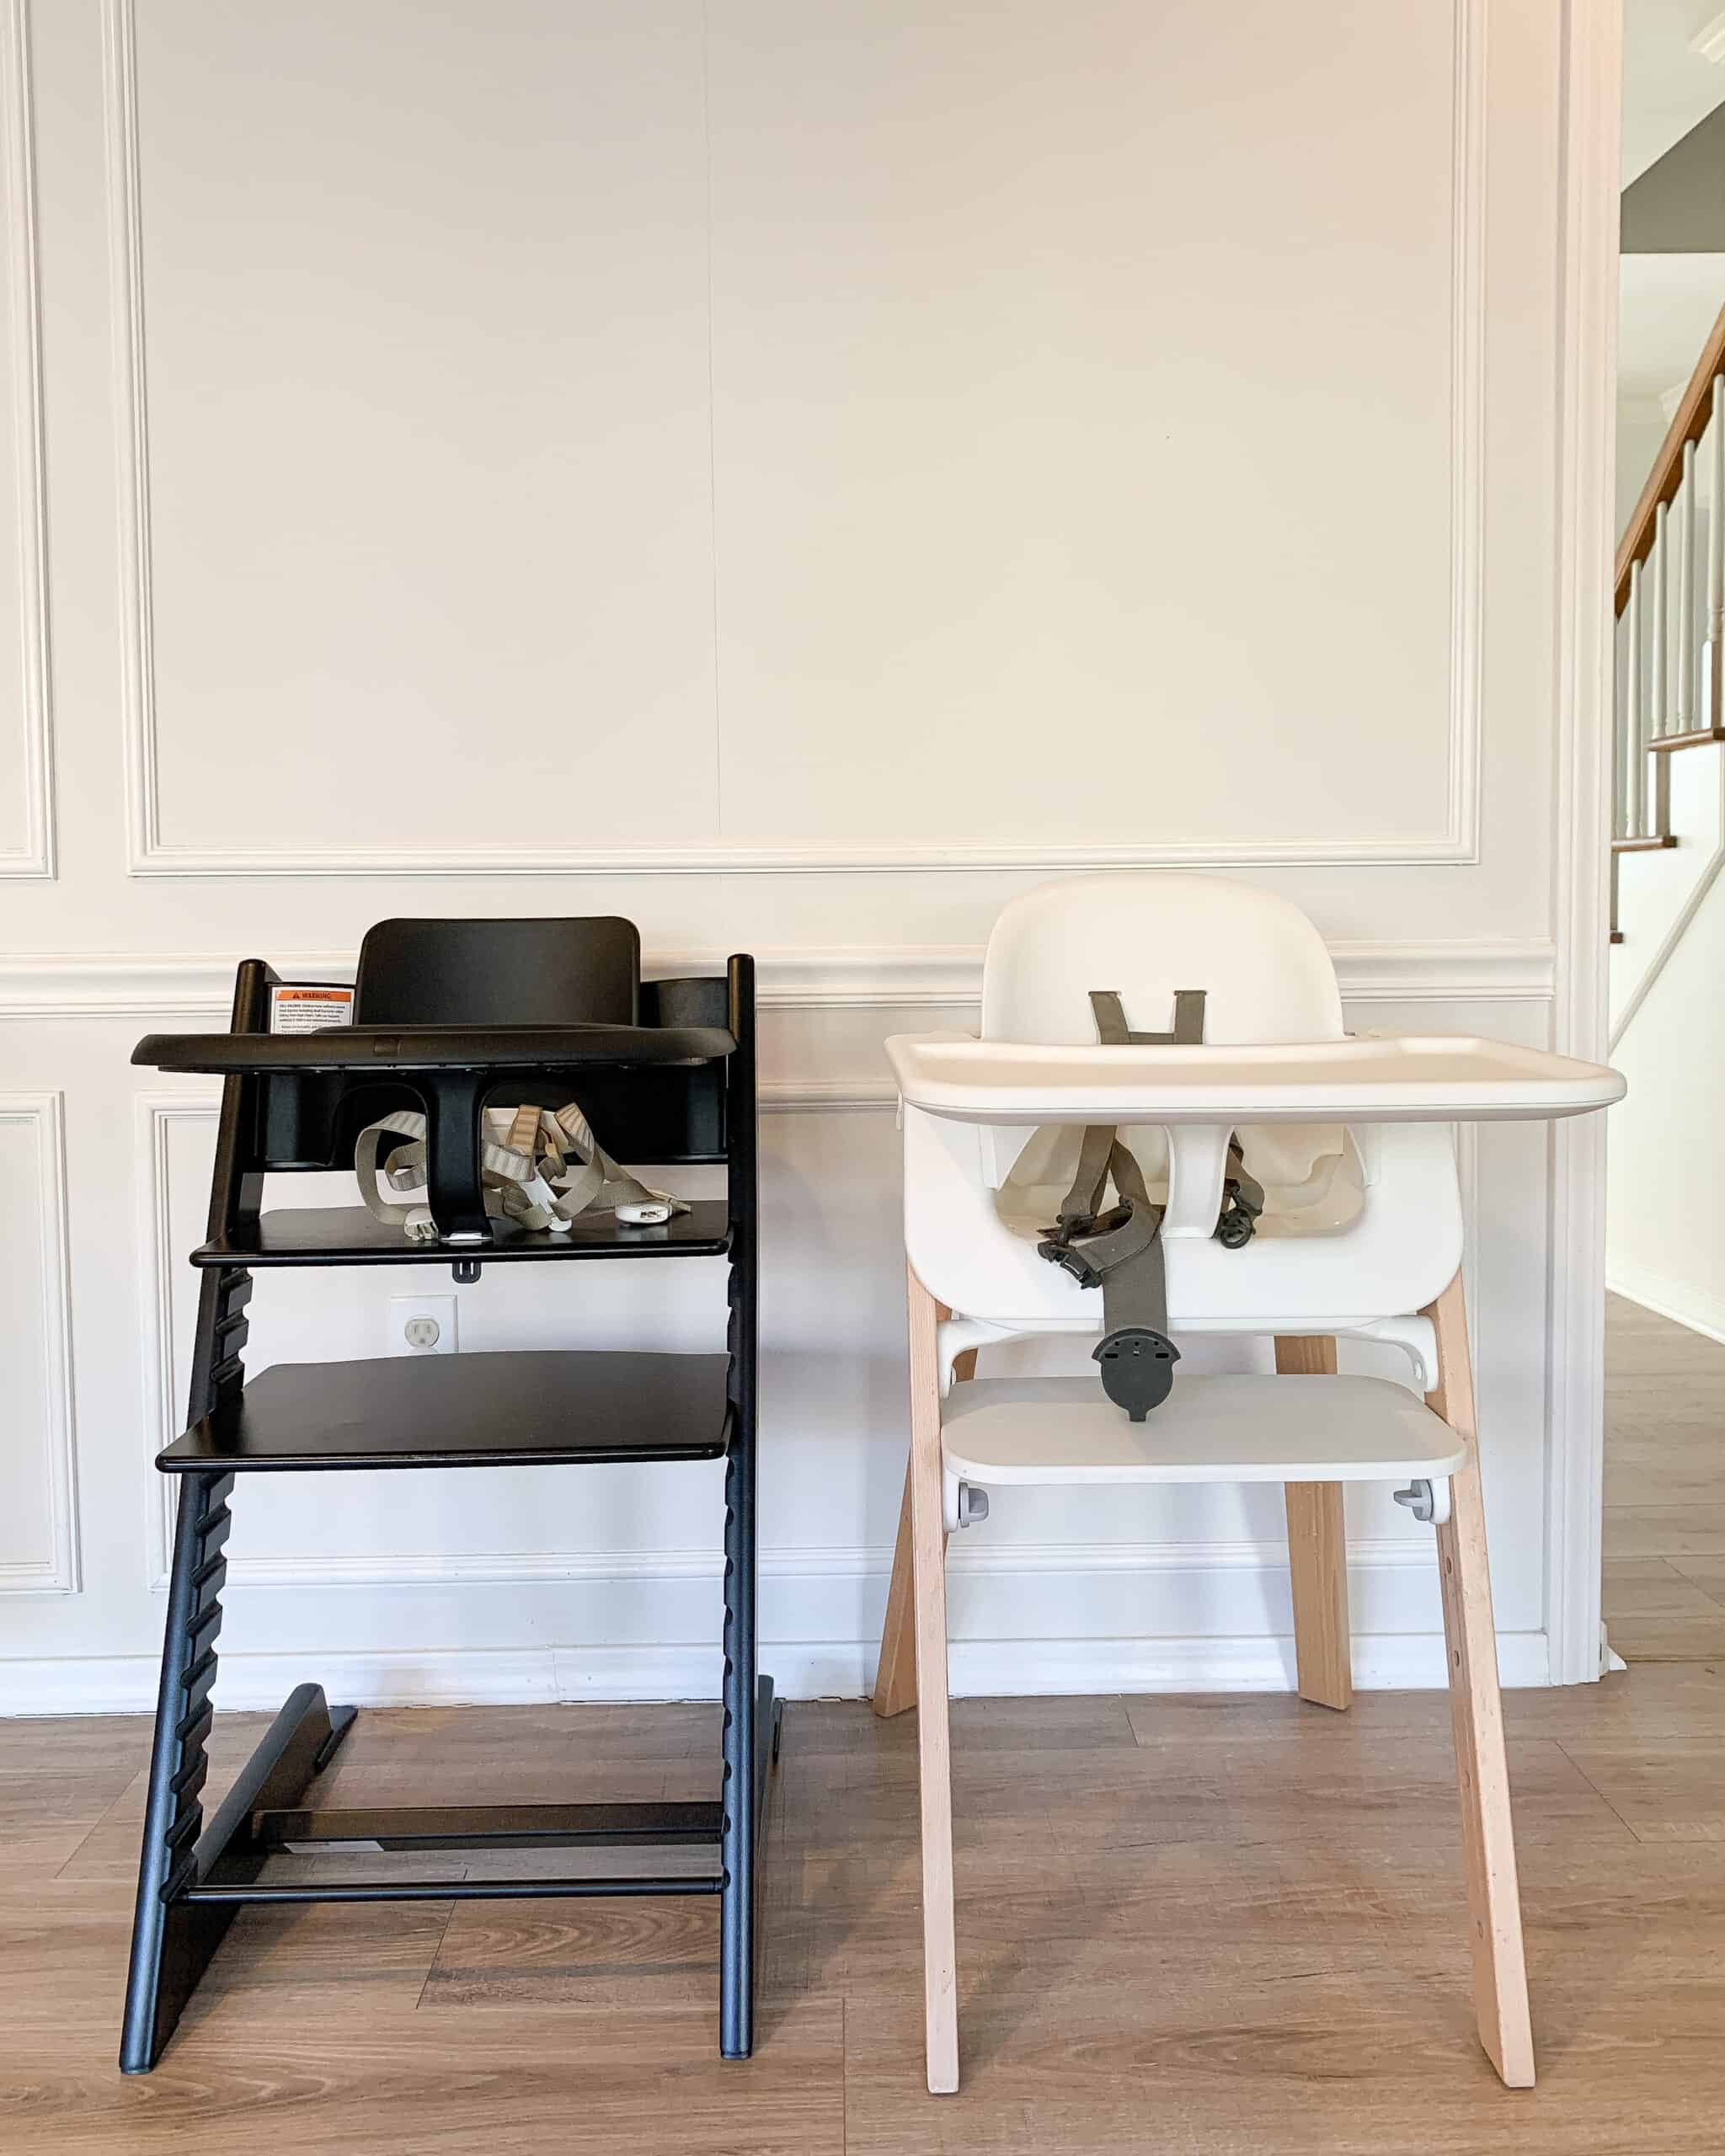 stokke steps and Stokke Tripp Trapp Highchairs